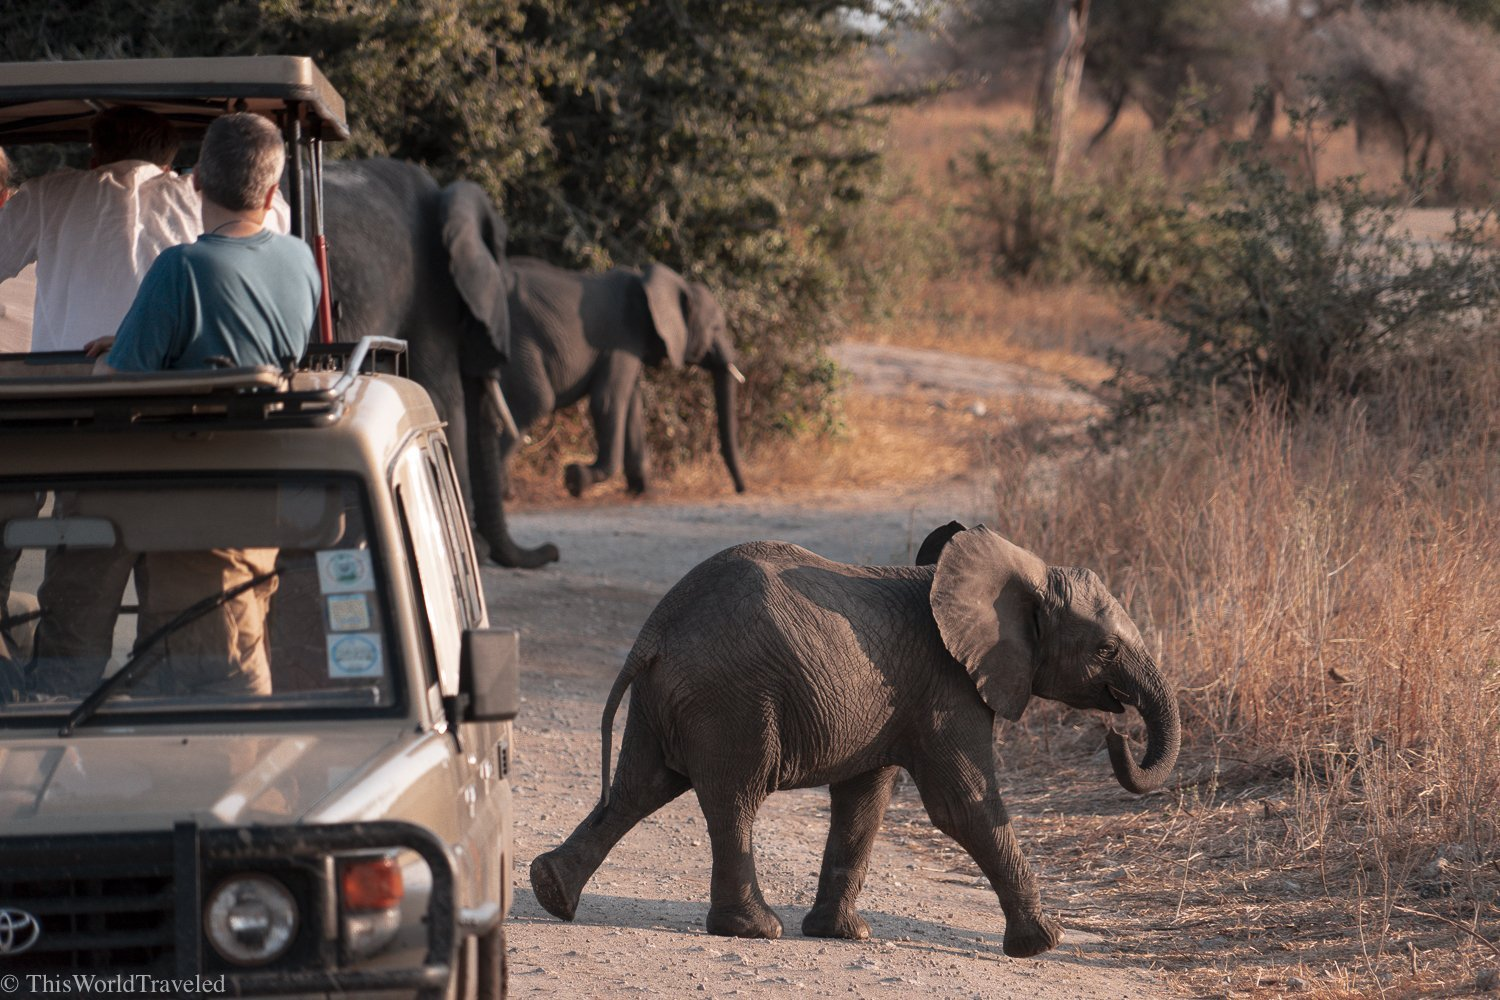 Safari in Tanzania: How to Plan the Perfect African Safari Vacation